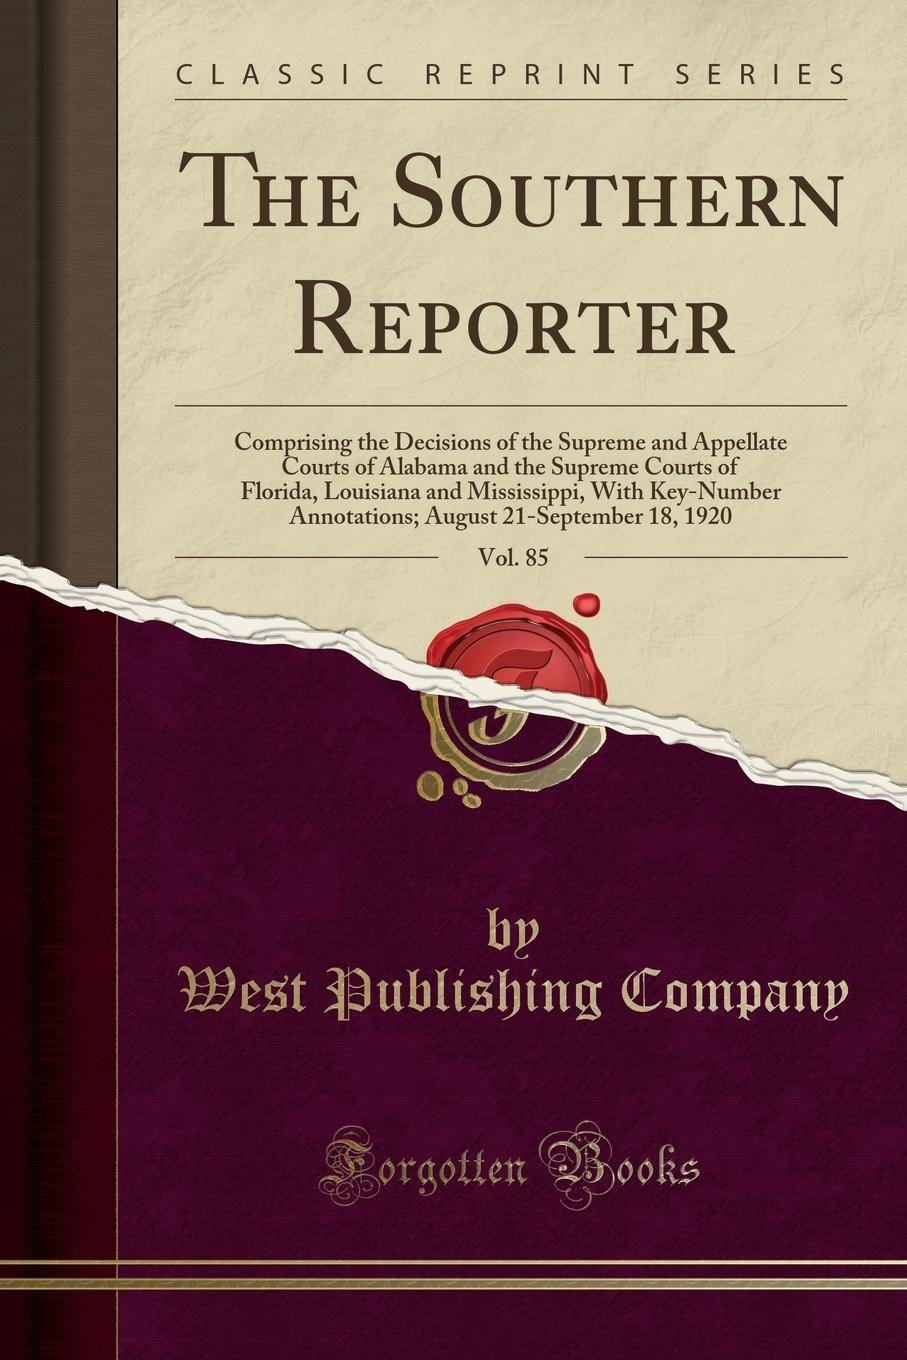 Download The Southern Reporter, Vol. 85: Comprising the Decisions of the Supreme and Appellate Courts of Alabama and the Supreme Courts of Florida, Louisiana ... 21-September 18, 1920 (Classic Reprint) ebook